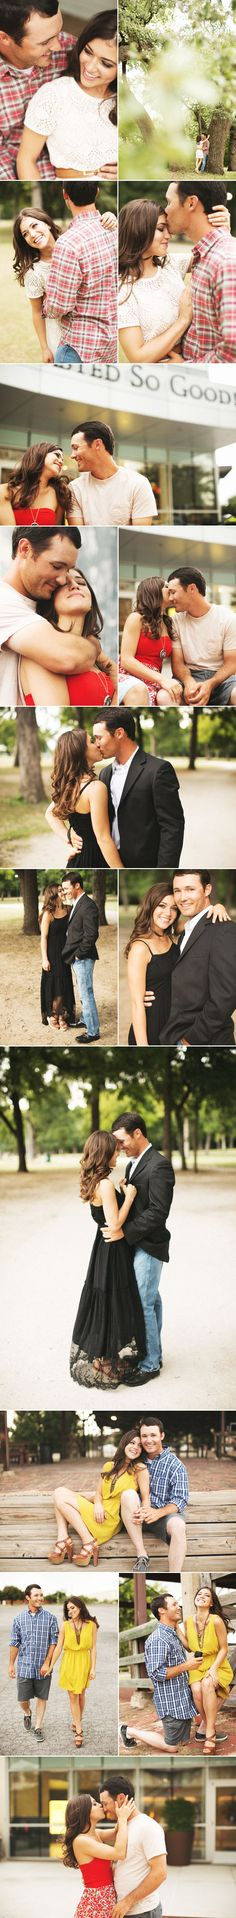 engagement photo ideas.